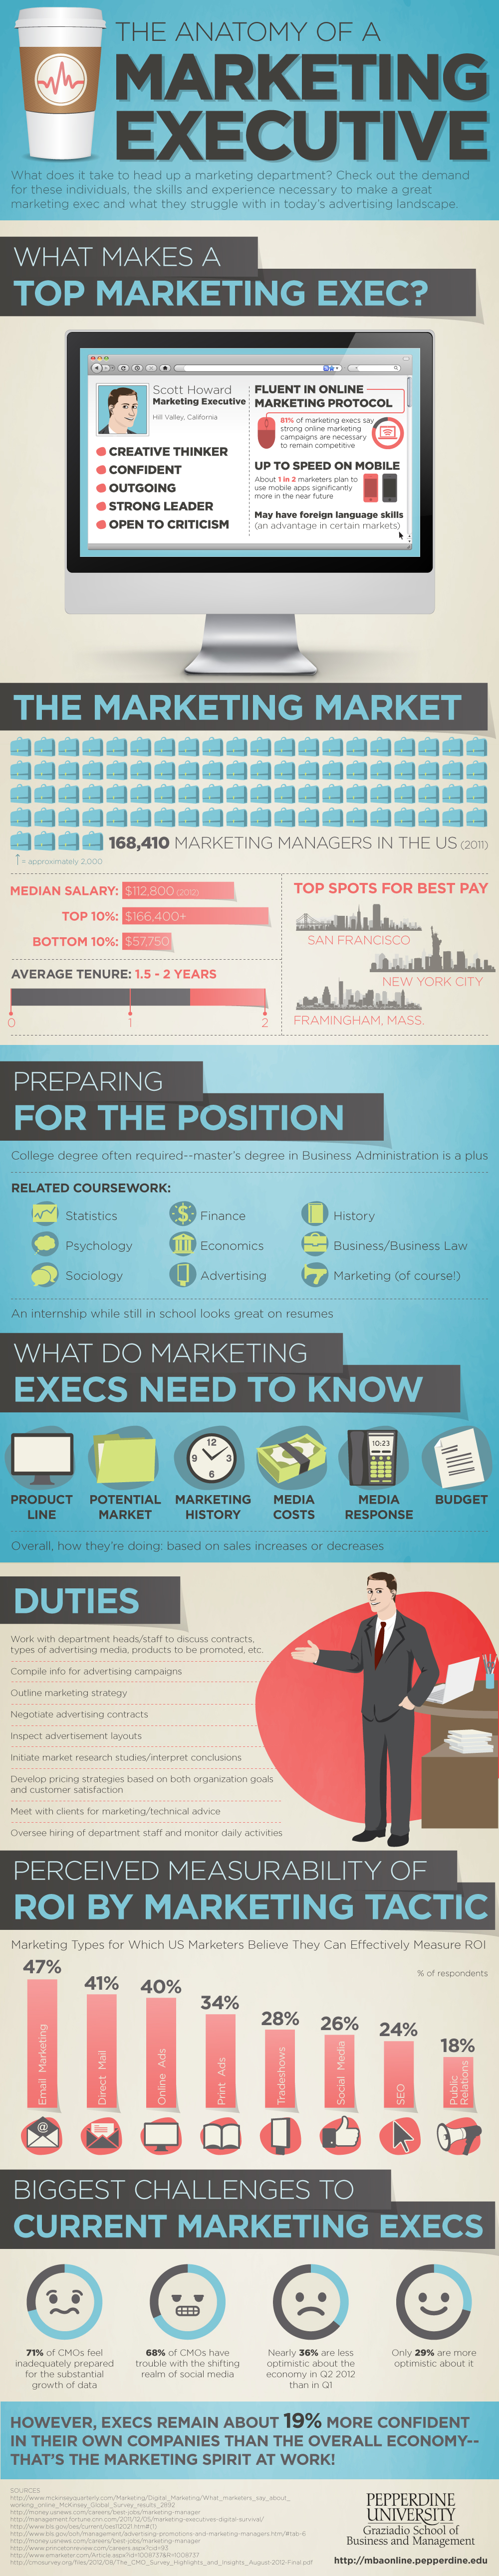 Anatomy of a Marketing Executive